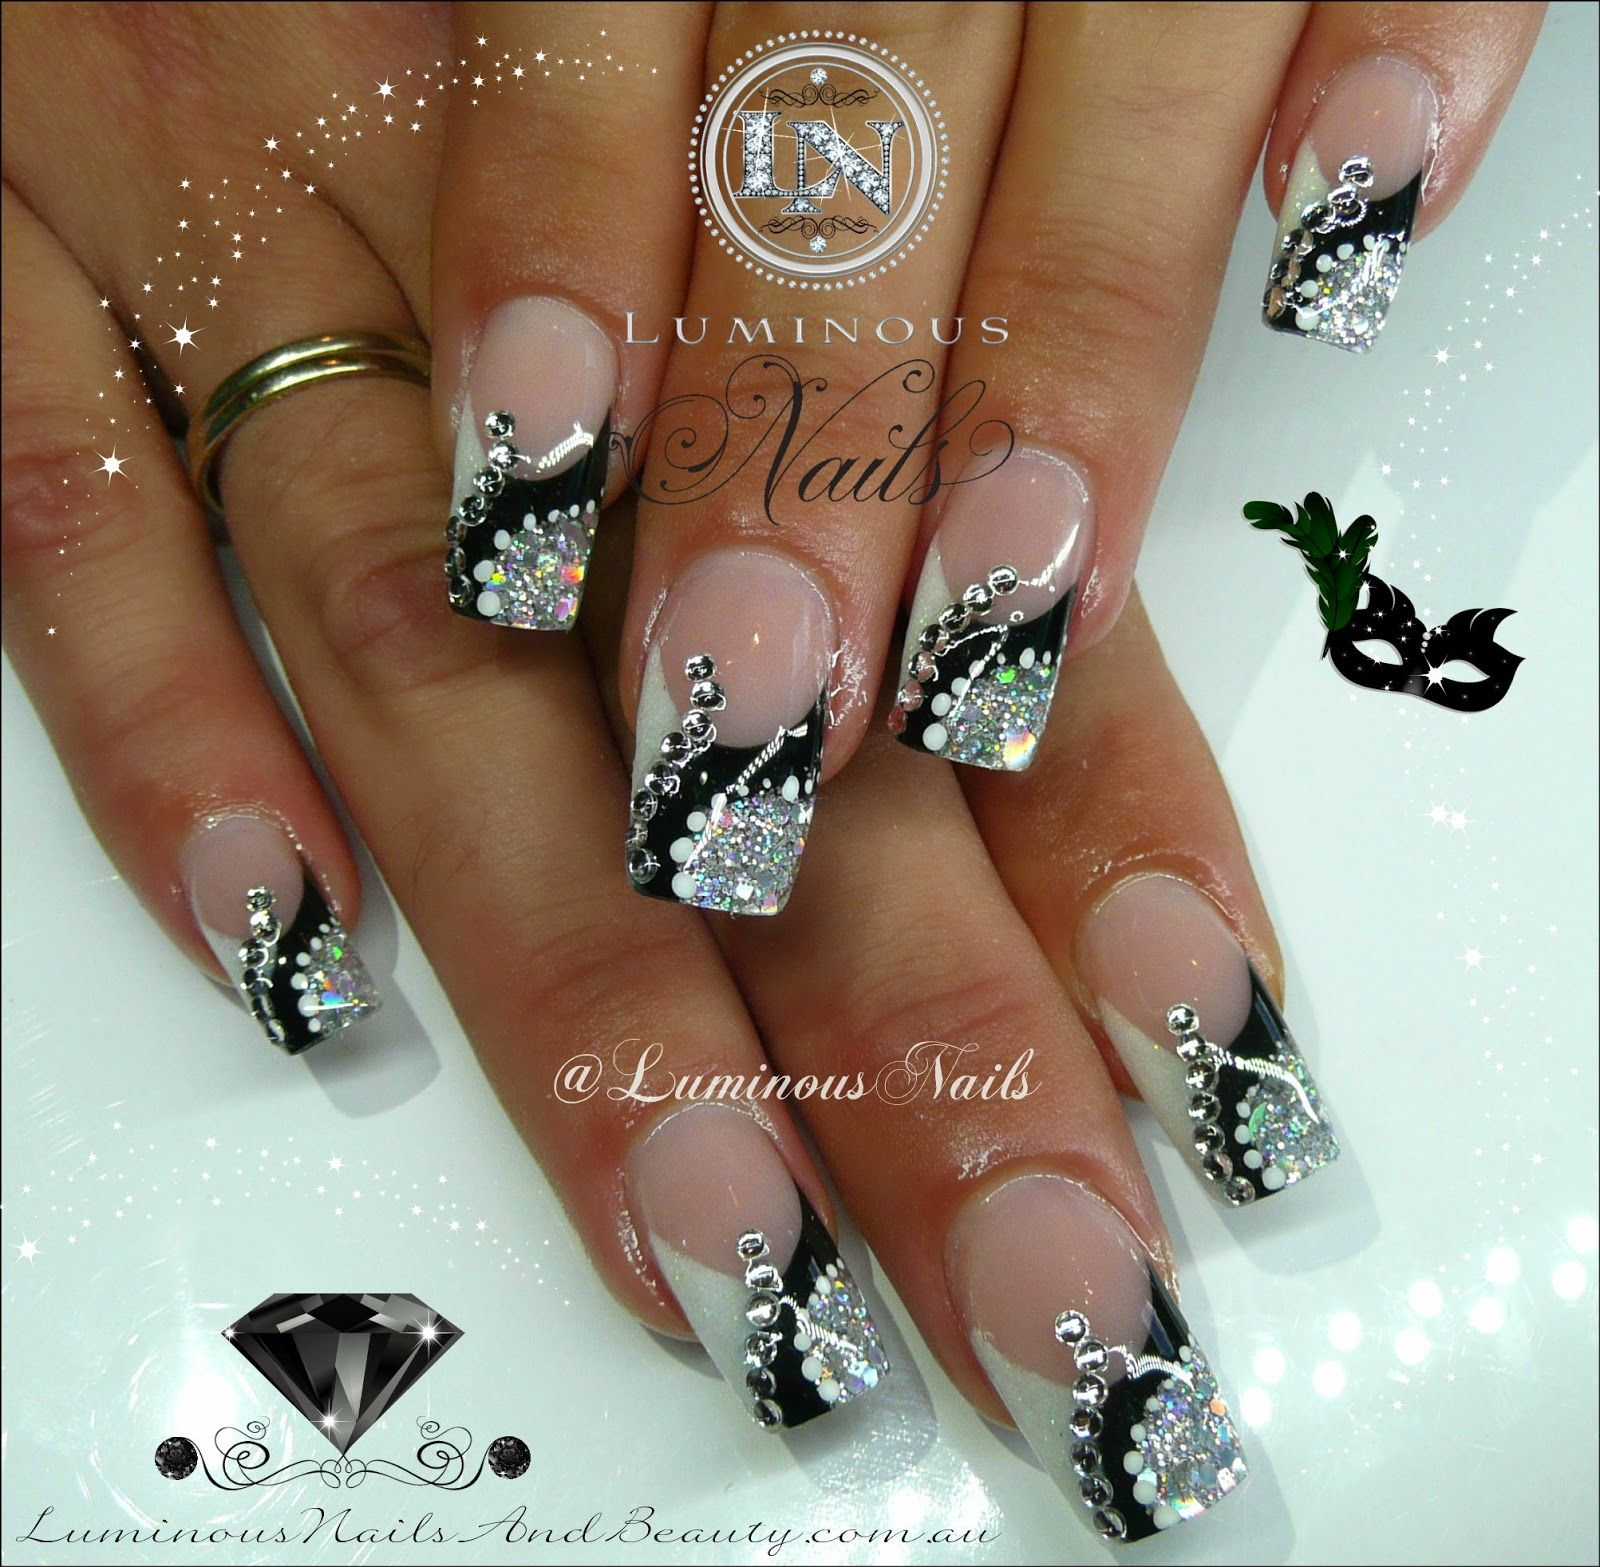 Luminous Nails: Black, Silver & White Nails with Bling ...